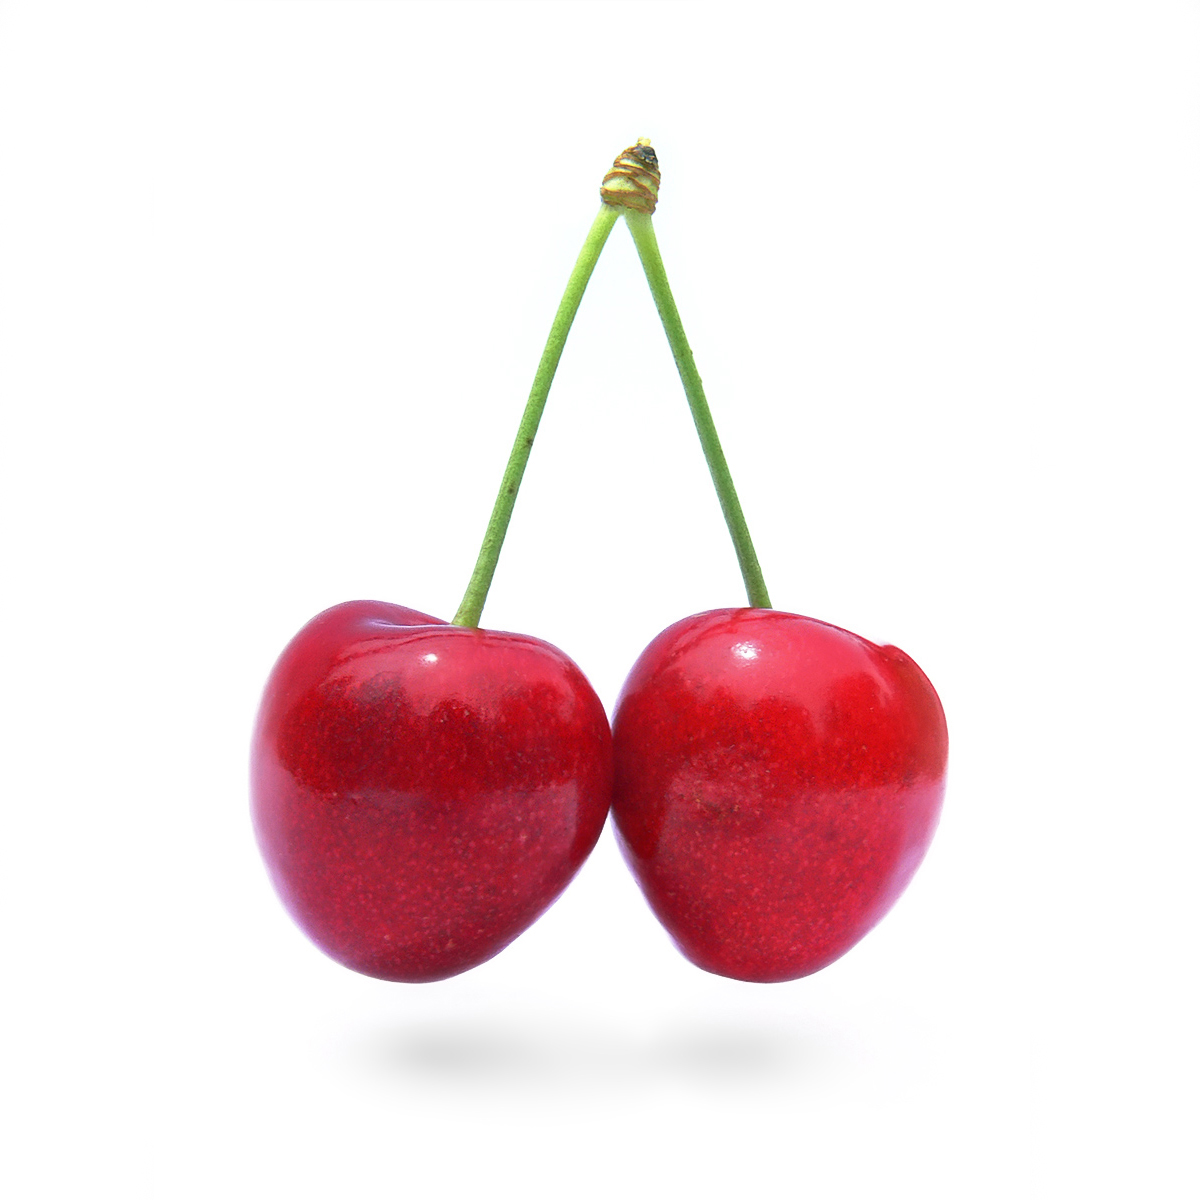 ... If you had a strange dream about a Cherry